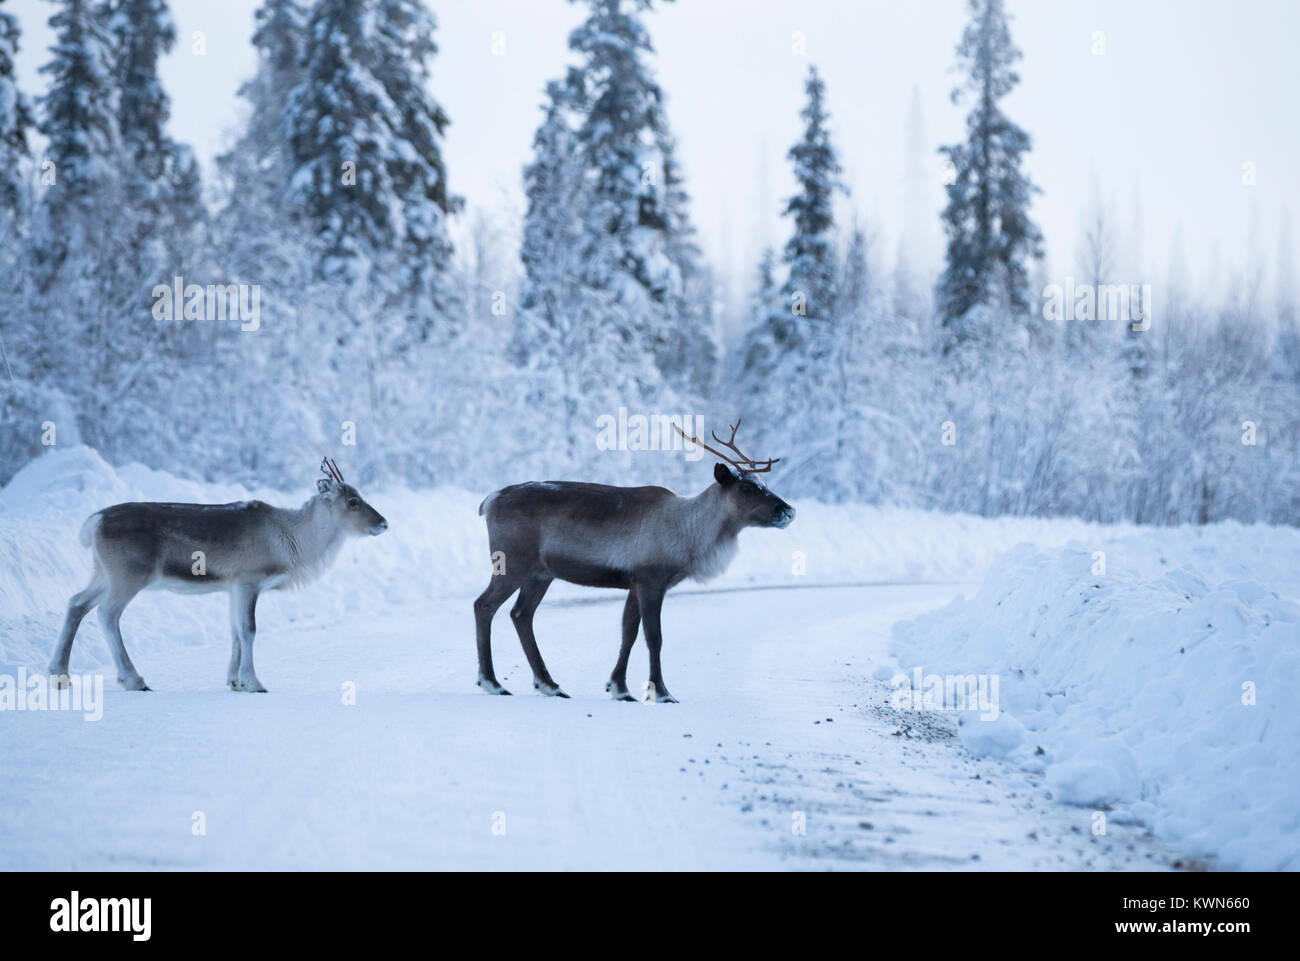 Reindeer couple in the winter environment Stock Photo